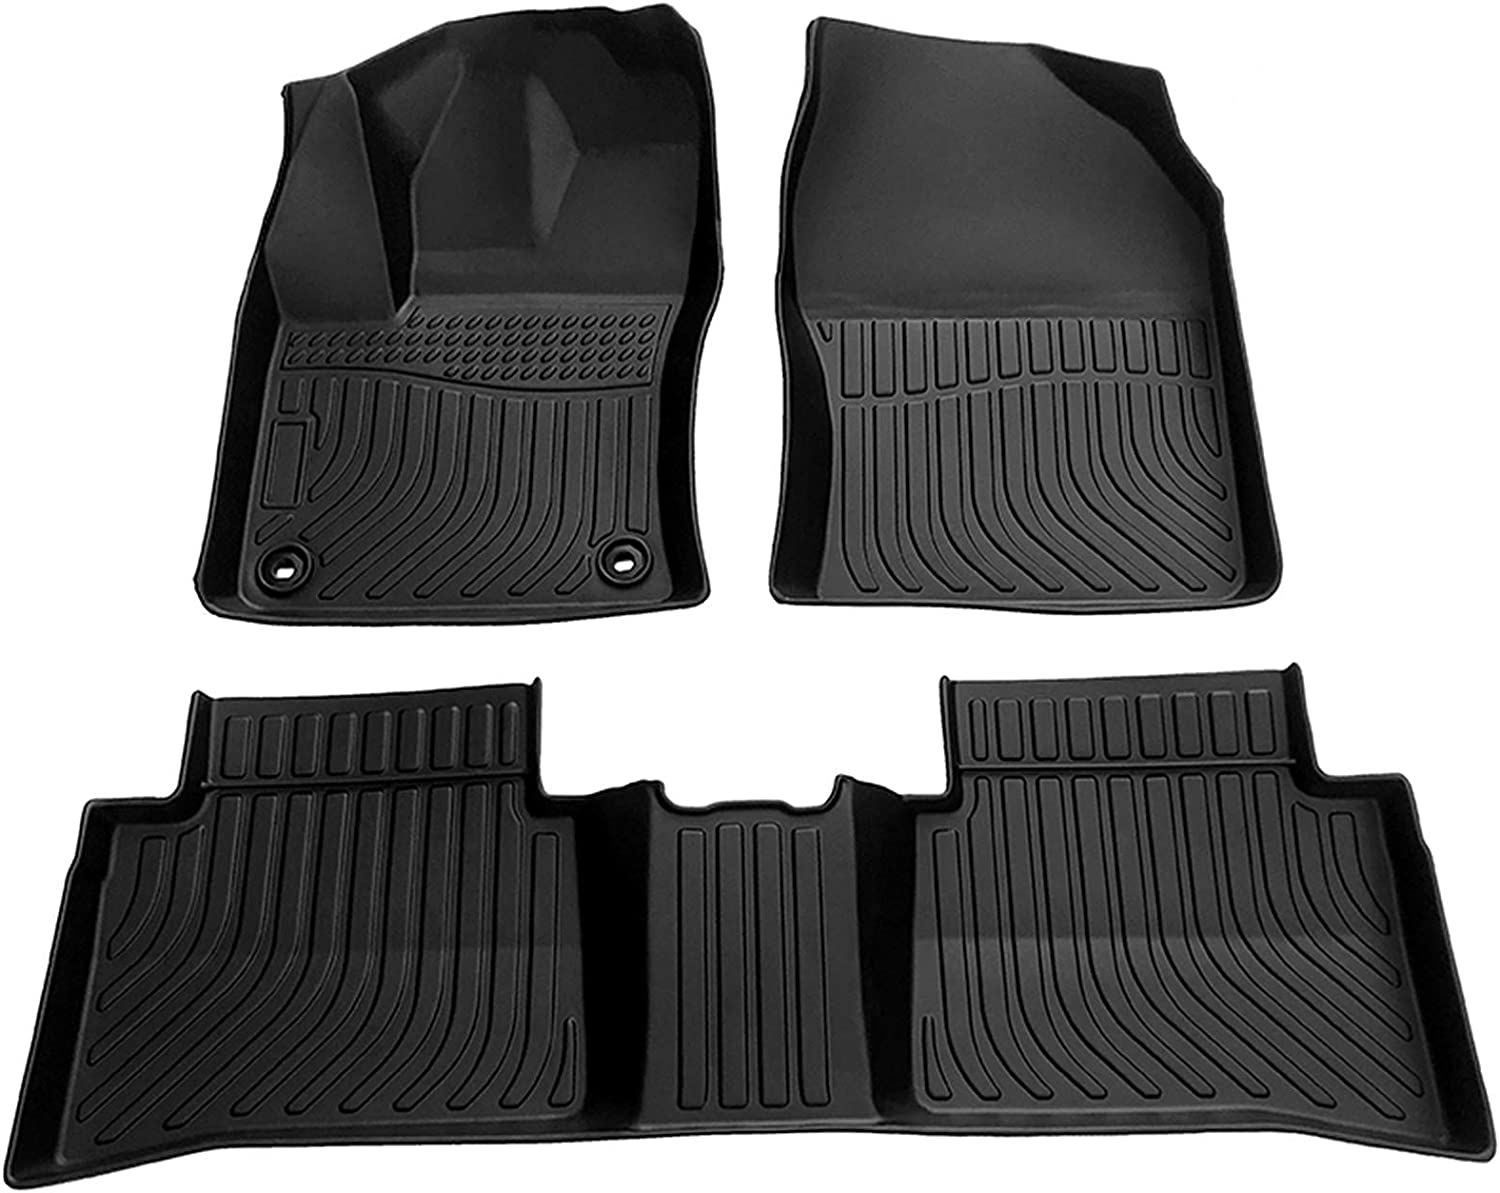 Landrol Car 2021 Floor Mats Replacement Prime Toyota Max 54% OFF Prius 2017-2 for